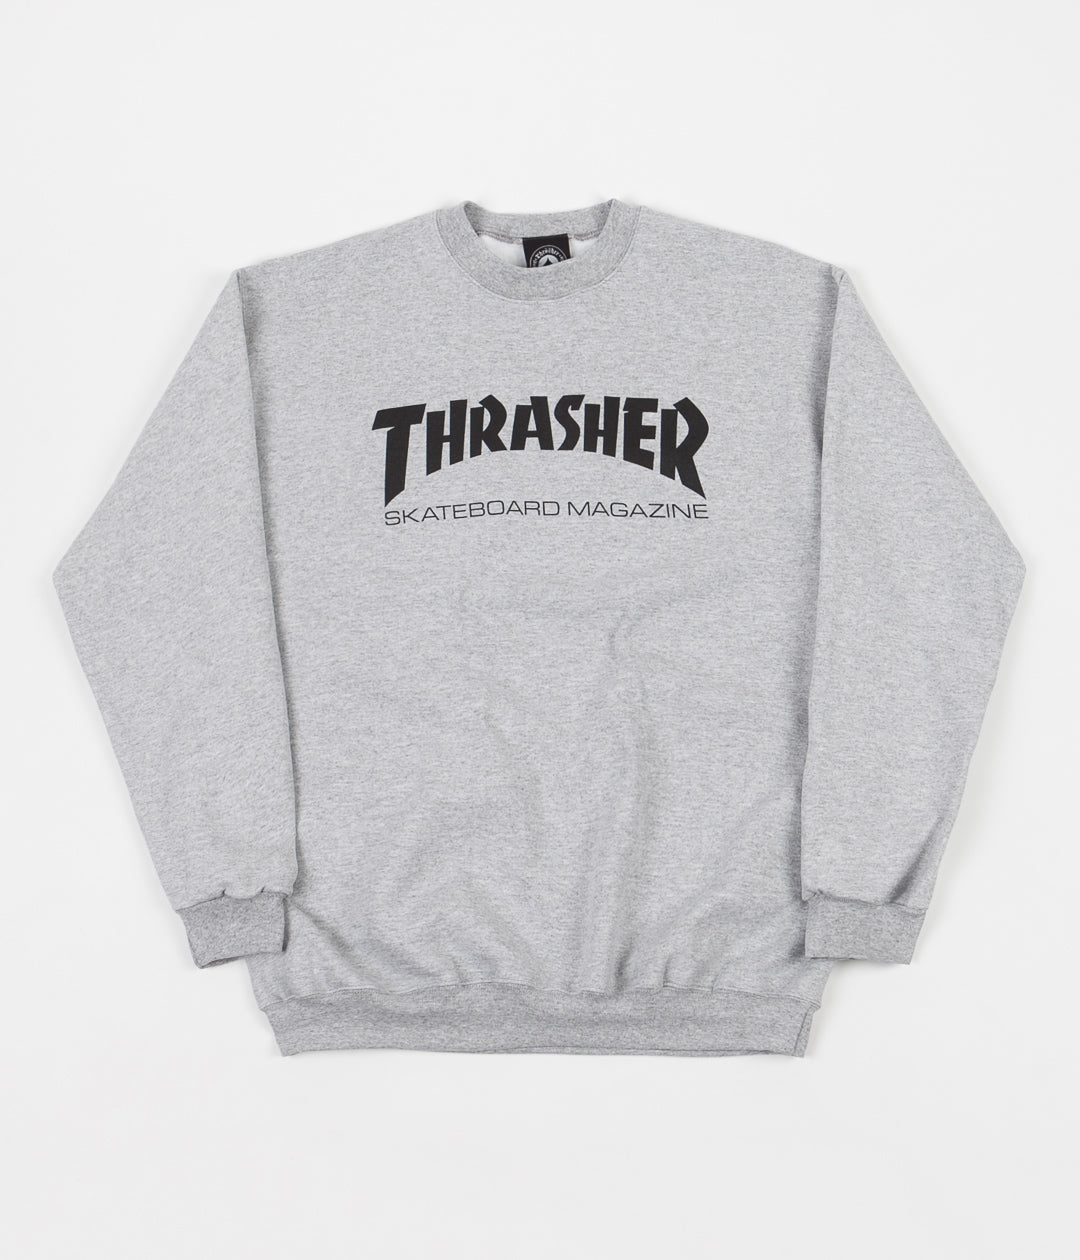 Thrasher Skate Mag Logo Crewneck Sweatshirt - Heather Grey